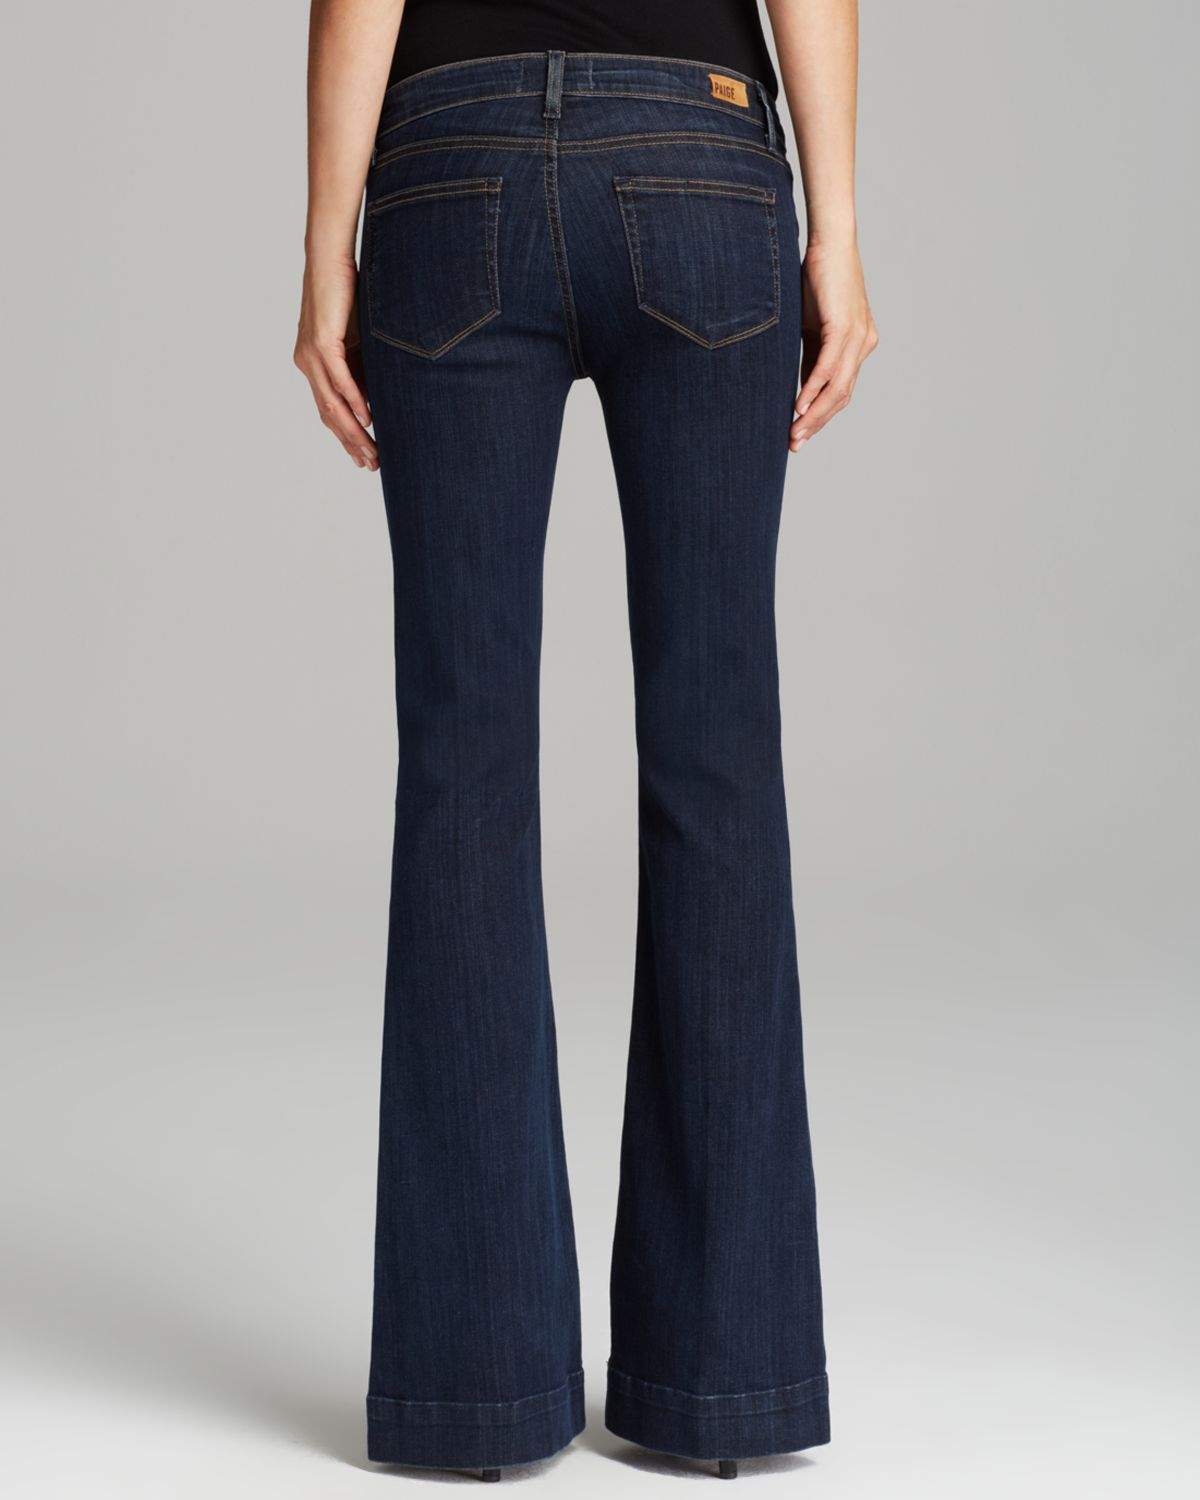 324d9e2b8ad42 Gallery. Previously sold at  Bloomingdale s · Women s Ag Jeans ...